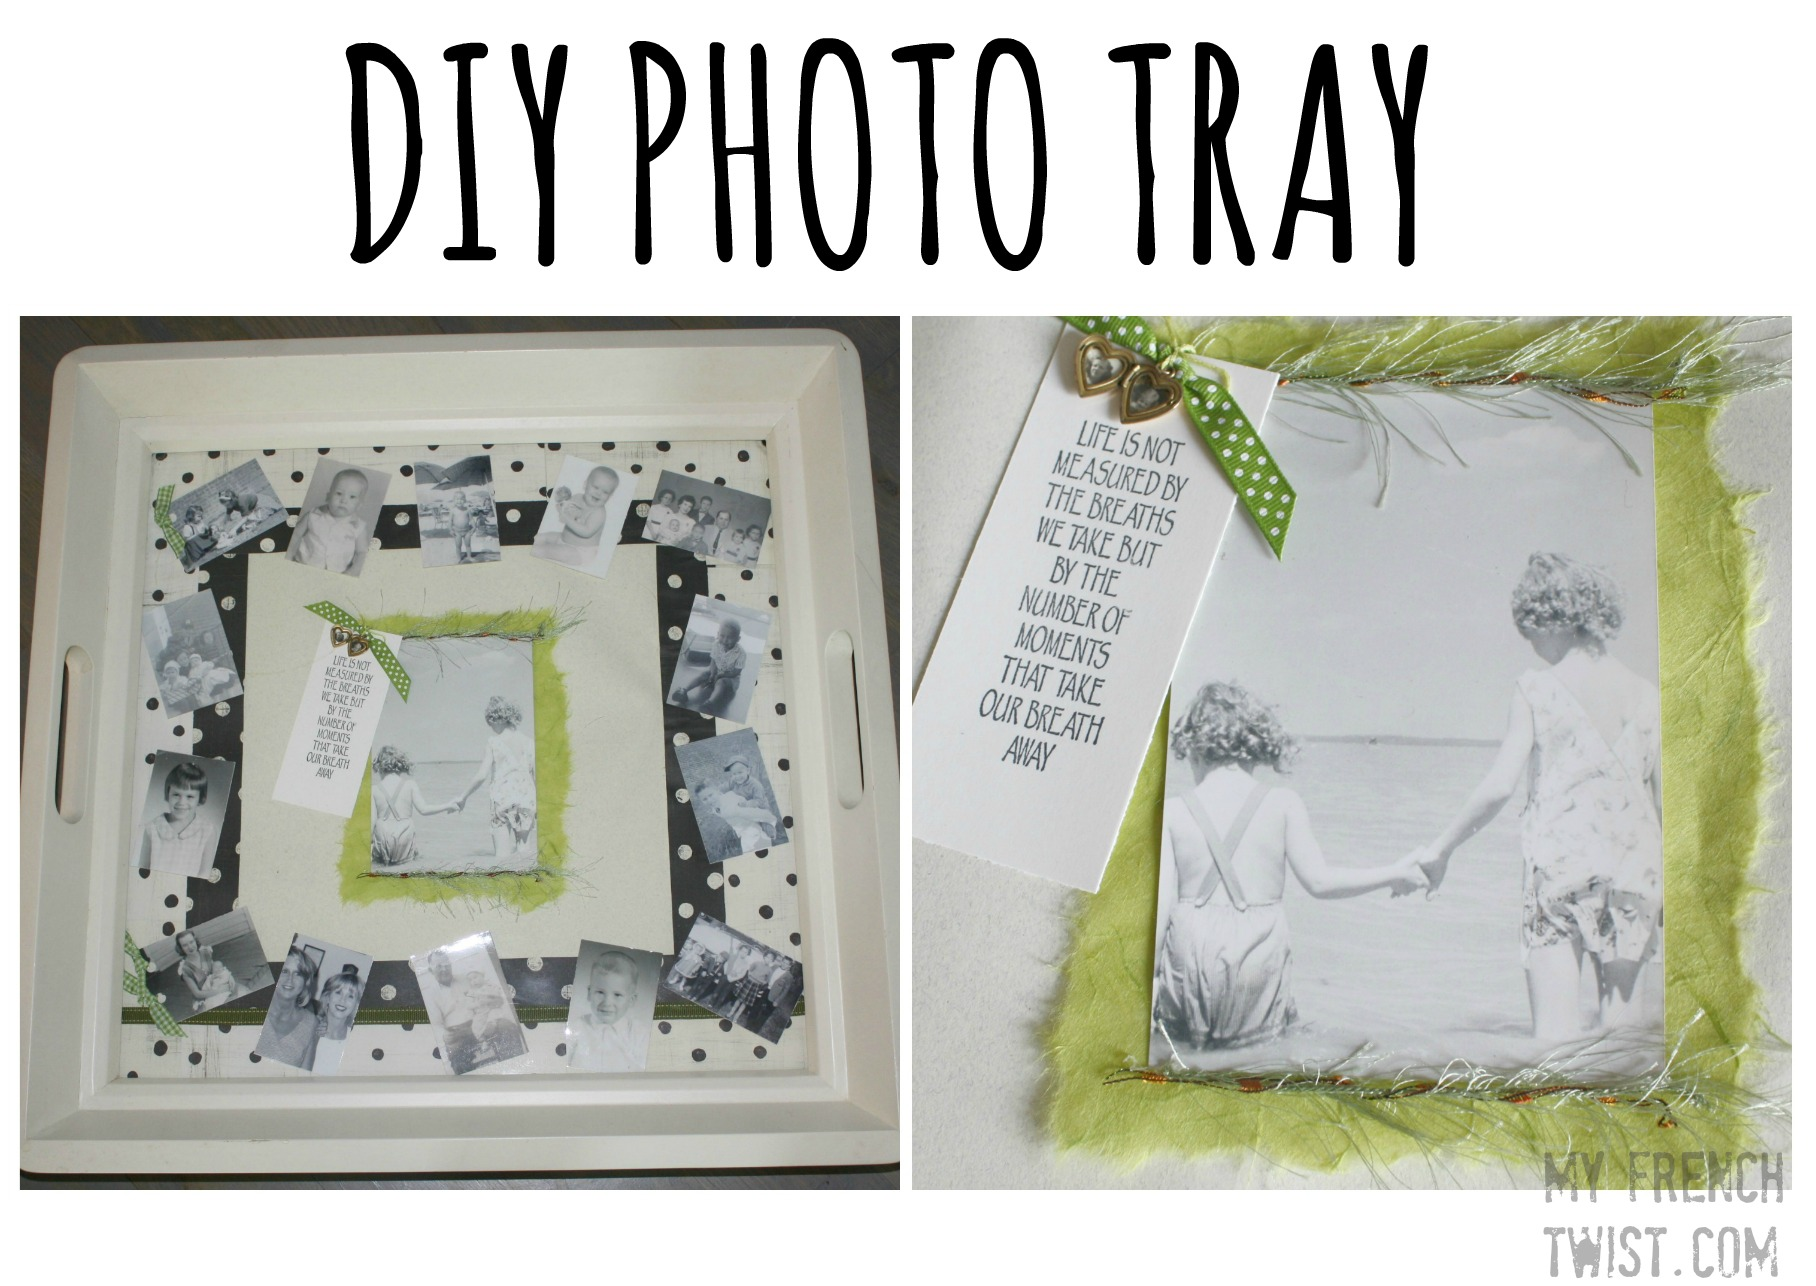 DIY photo tray - my french twist